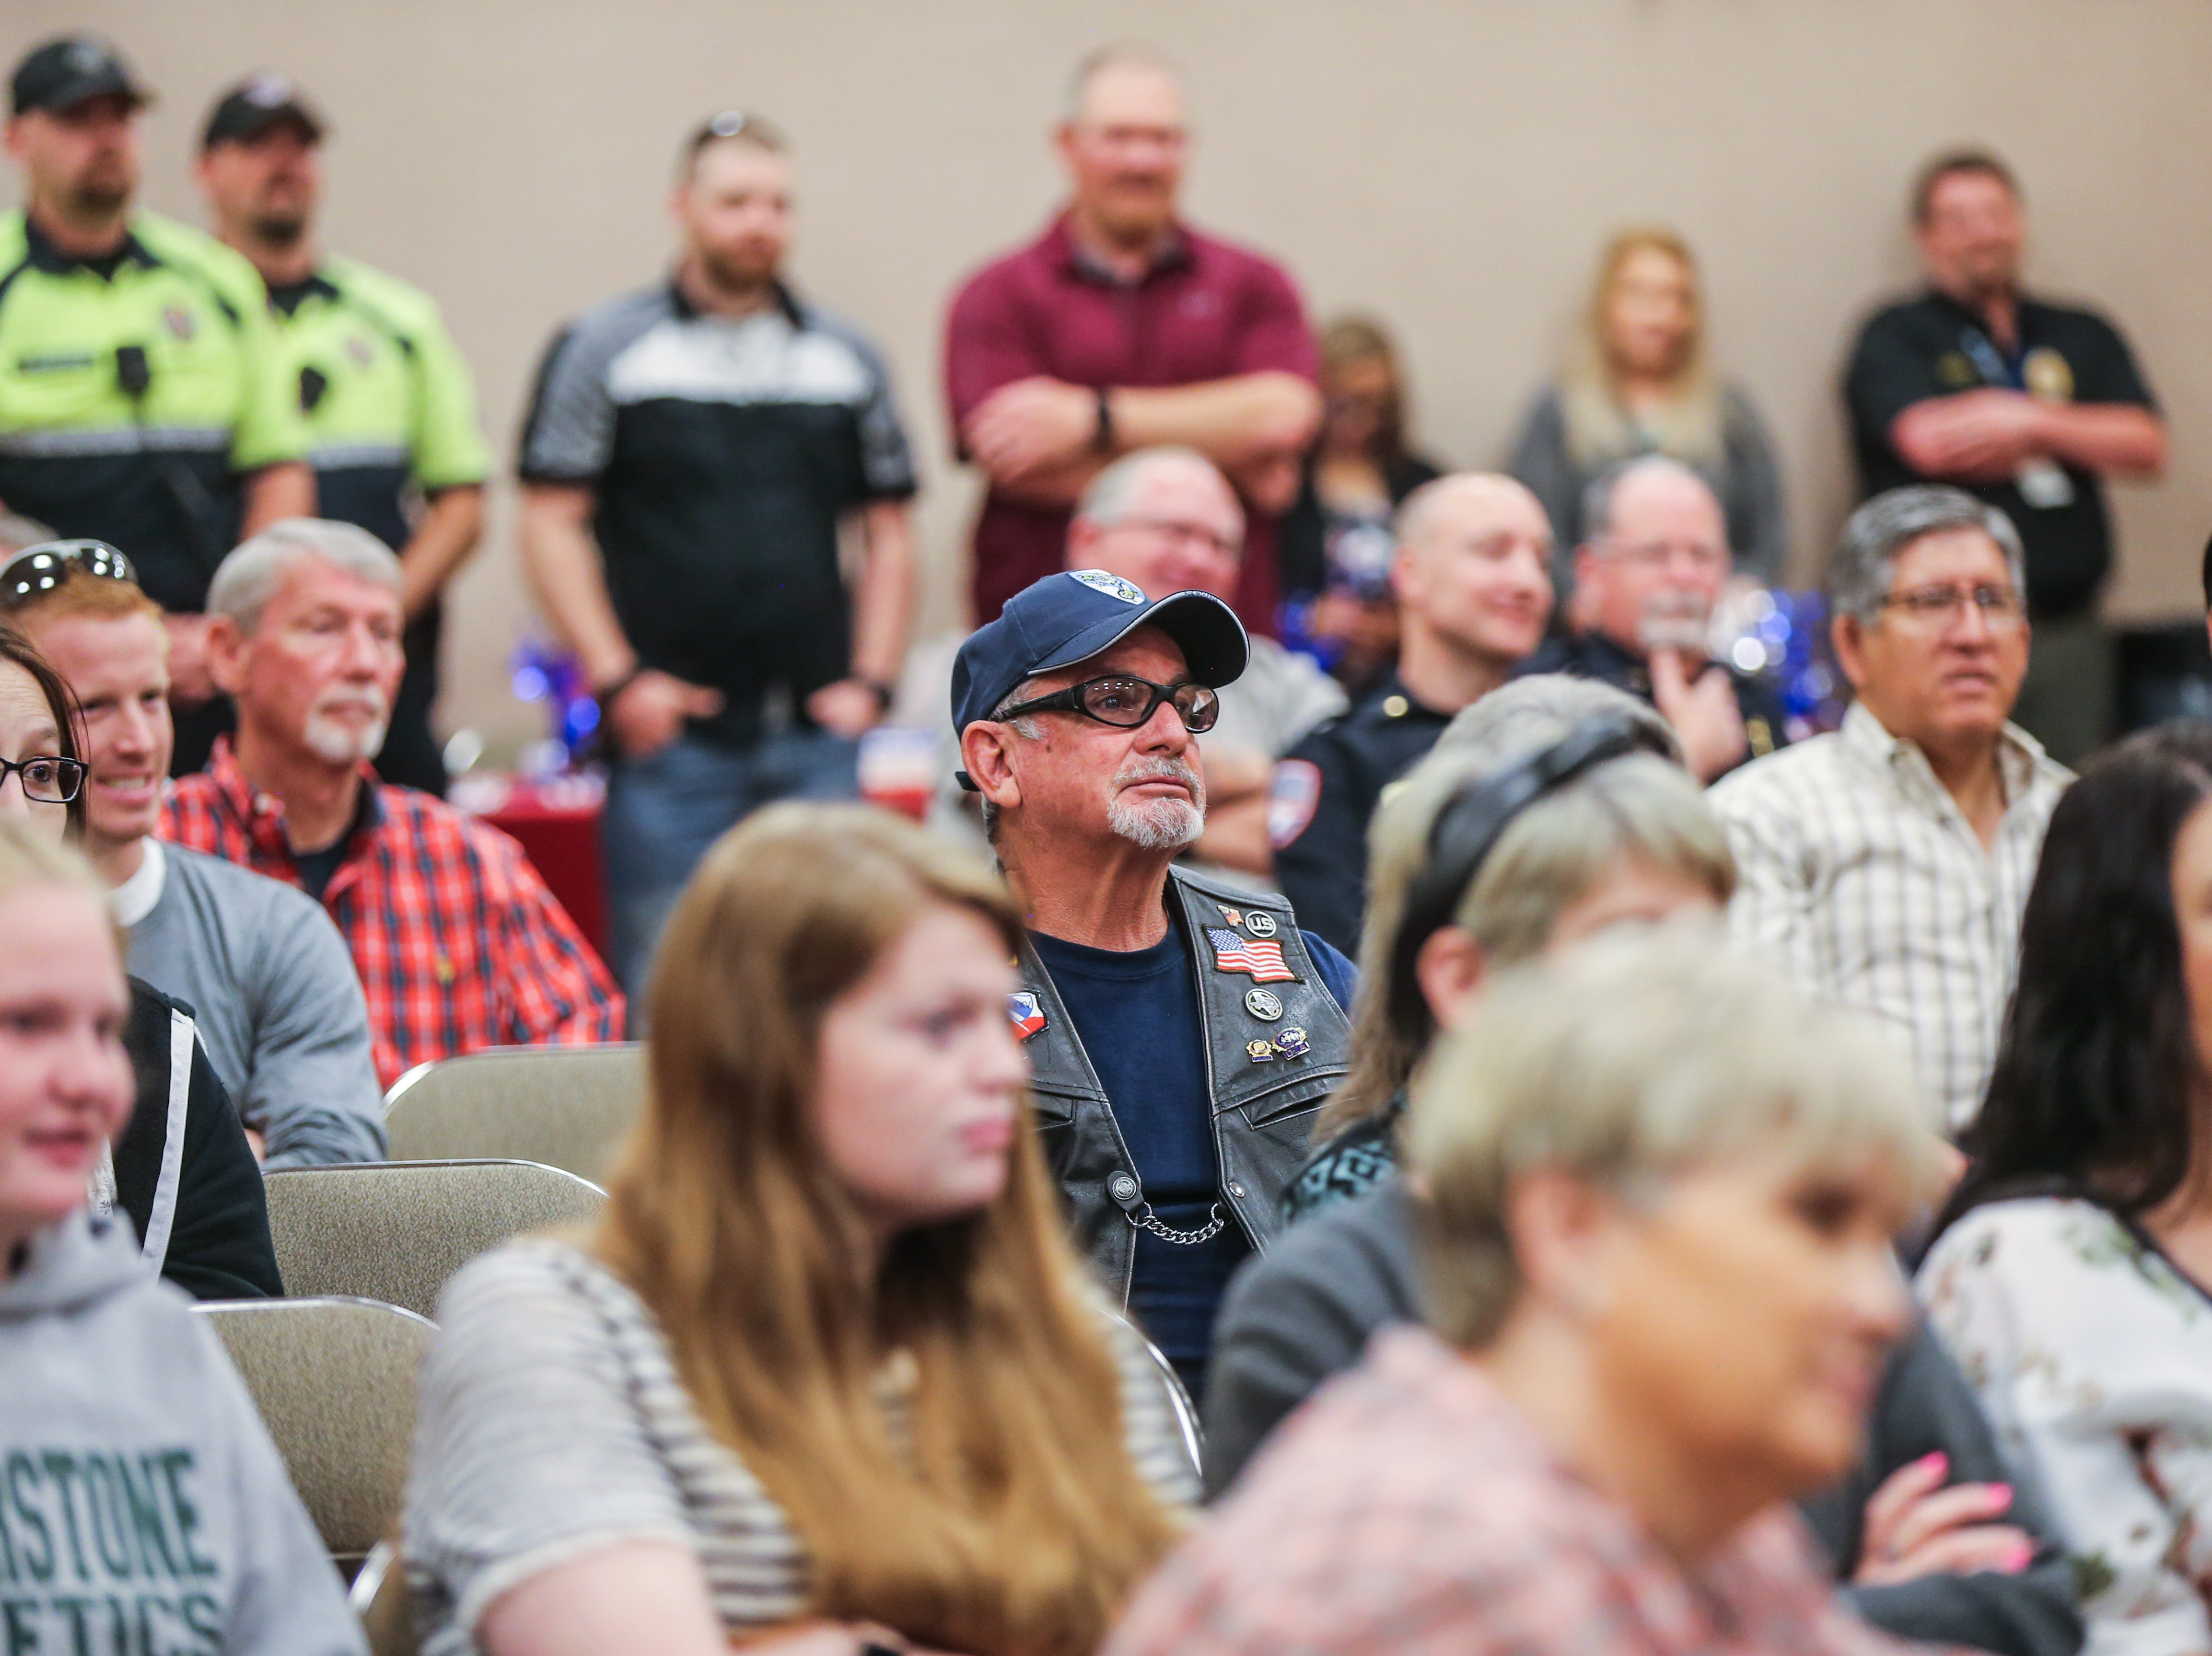 San Angelo police officers and other attendees fill the room for Officer Brian Bylsma's retirement ceremony Friday, March 29, 2019, at the McNease Convention Center.